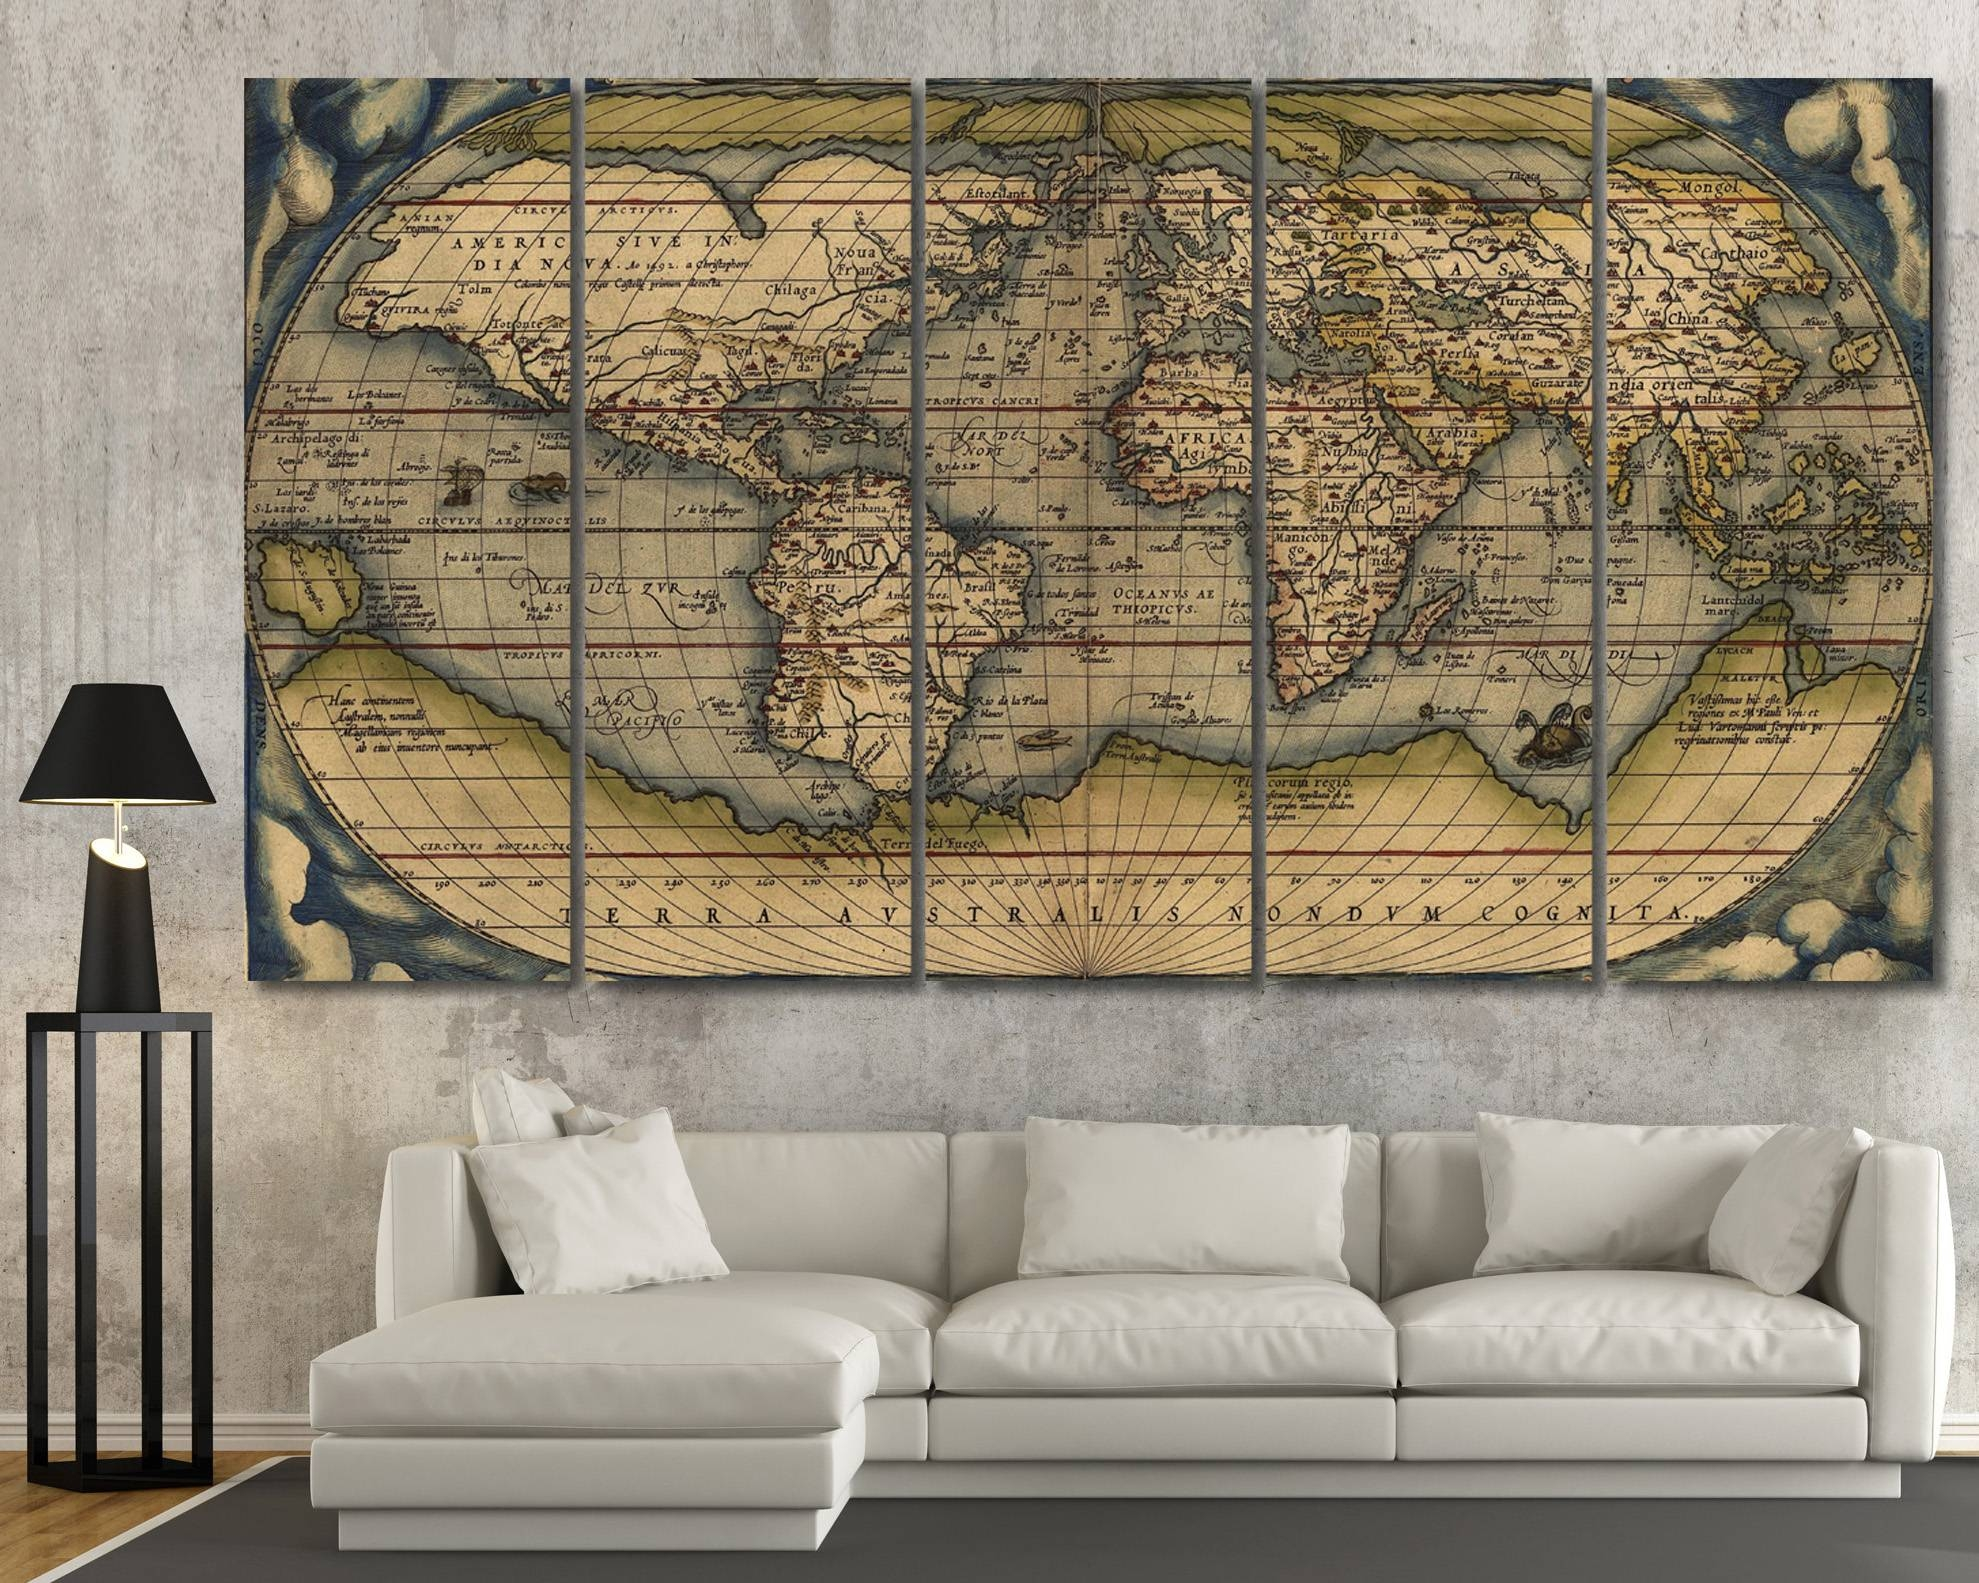 Large Vintage Wall Art Old World Map At Texelprintart Inside Most Current Antique Map Wall Art (View 2 of 20)